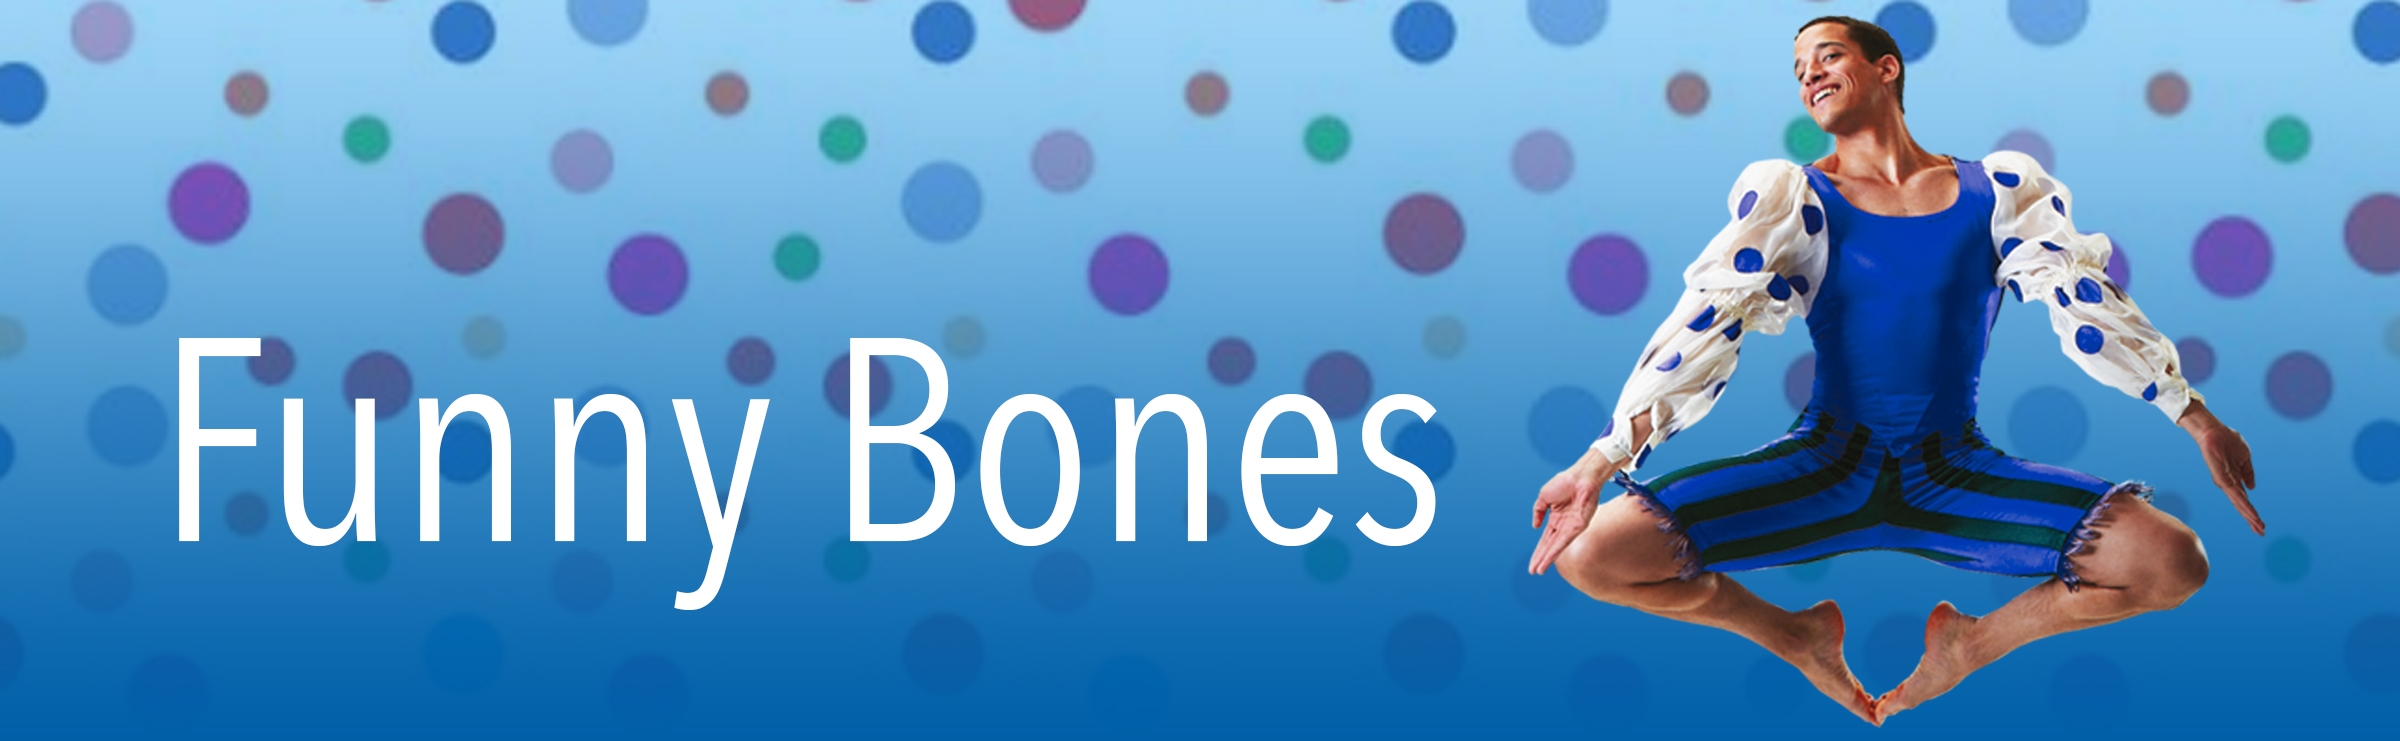 FunnyBones header Touring